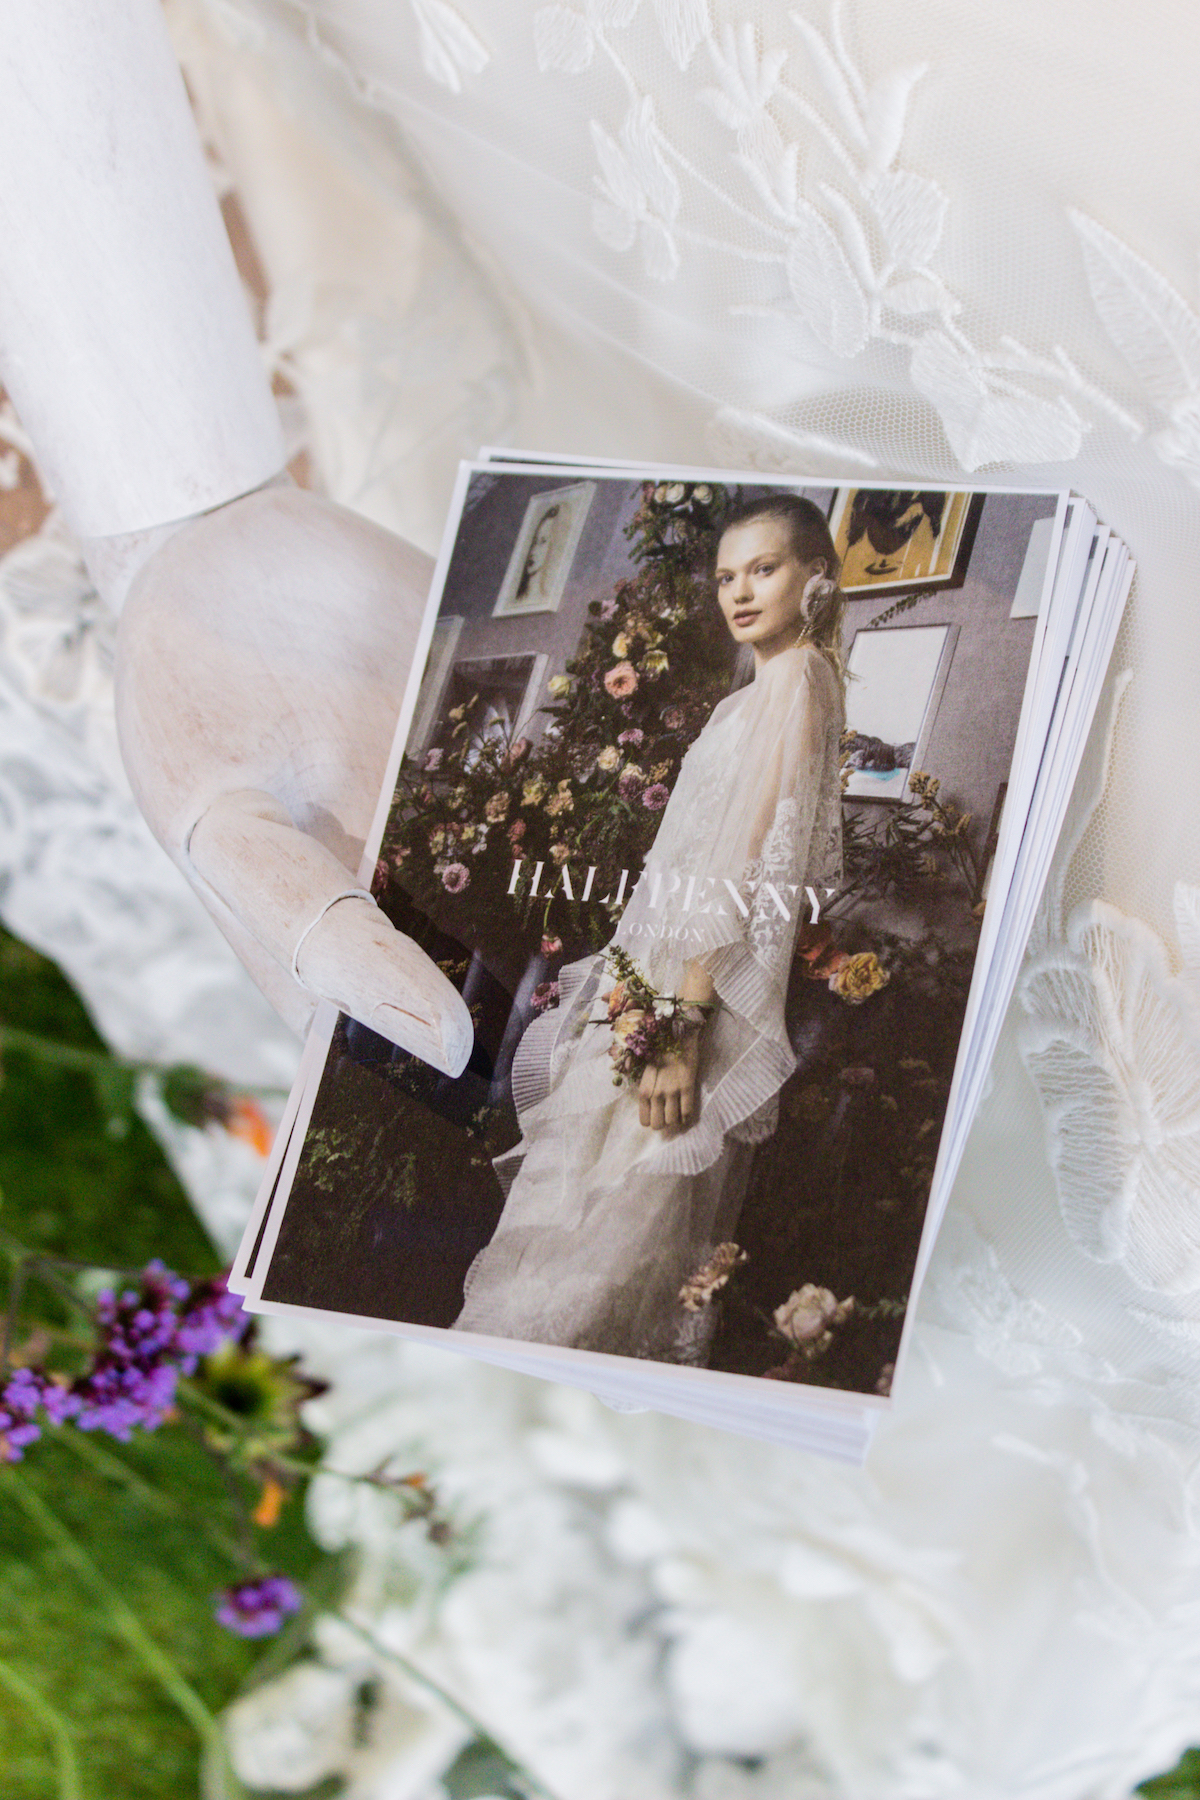 Halfpenny London at Brides the Show 2018